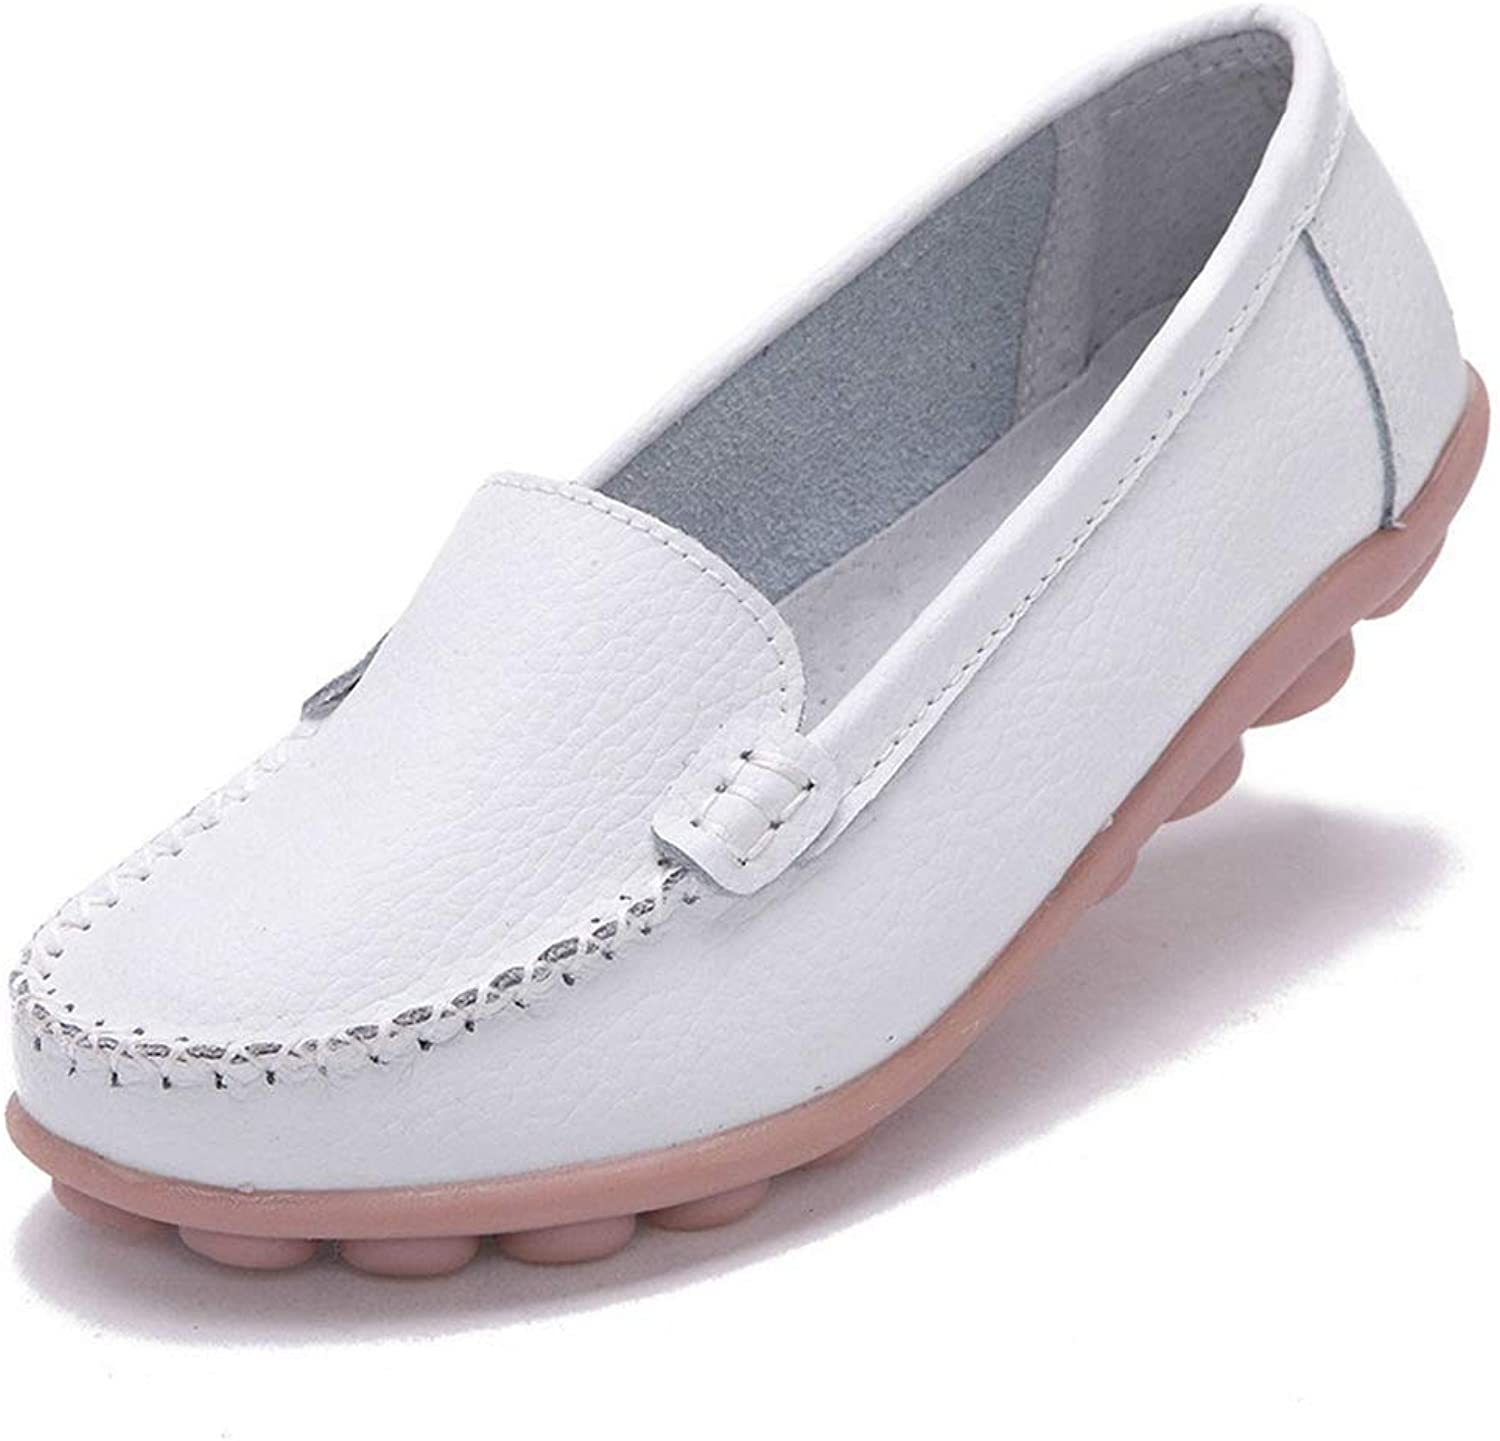 T-JULY Woman Leather Women shoes Flats colors Footwear Loafers Slip On Women's Flat shoes Moccasins Plus Size